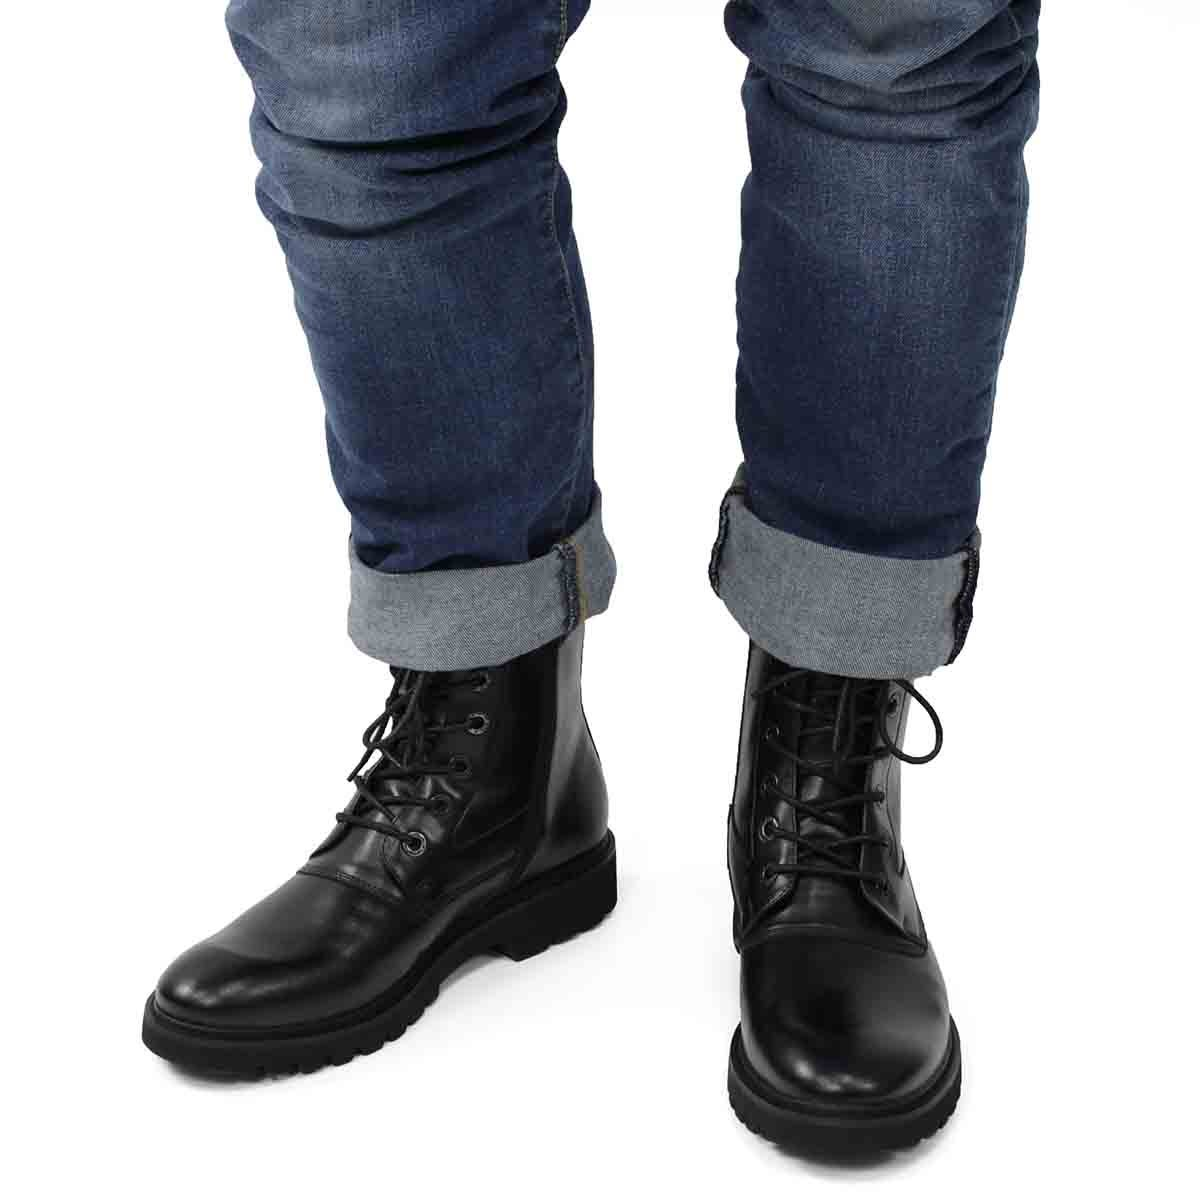 Mns Grand black lace up combat boot